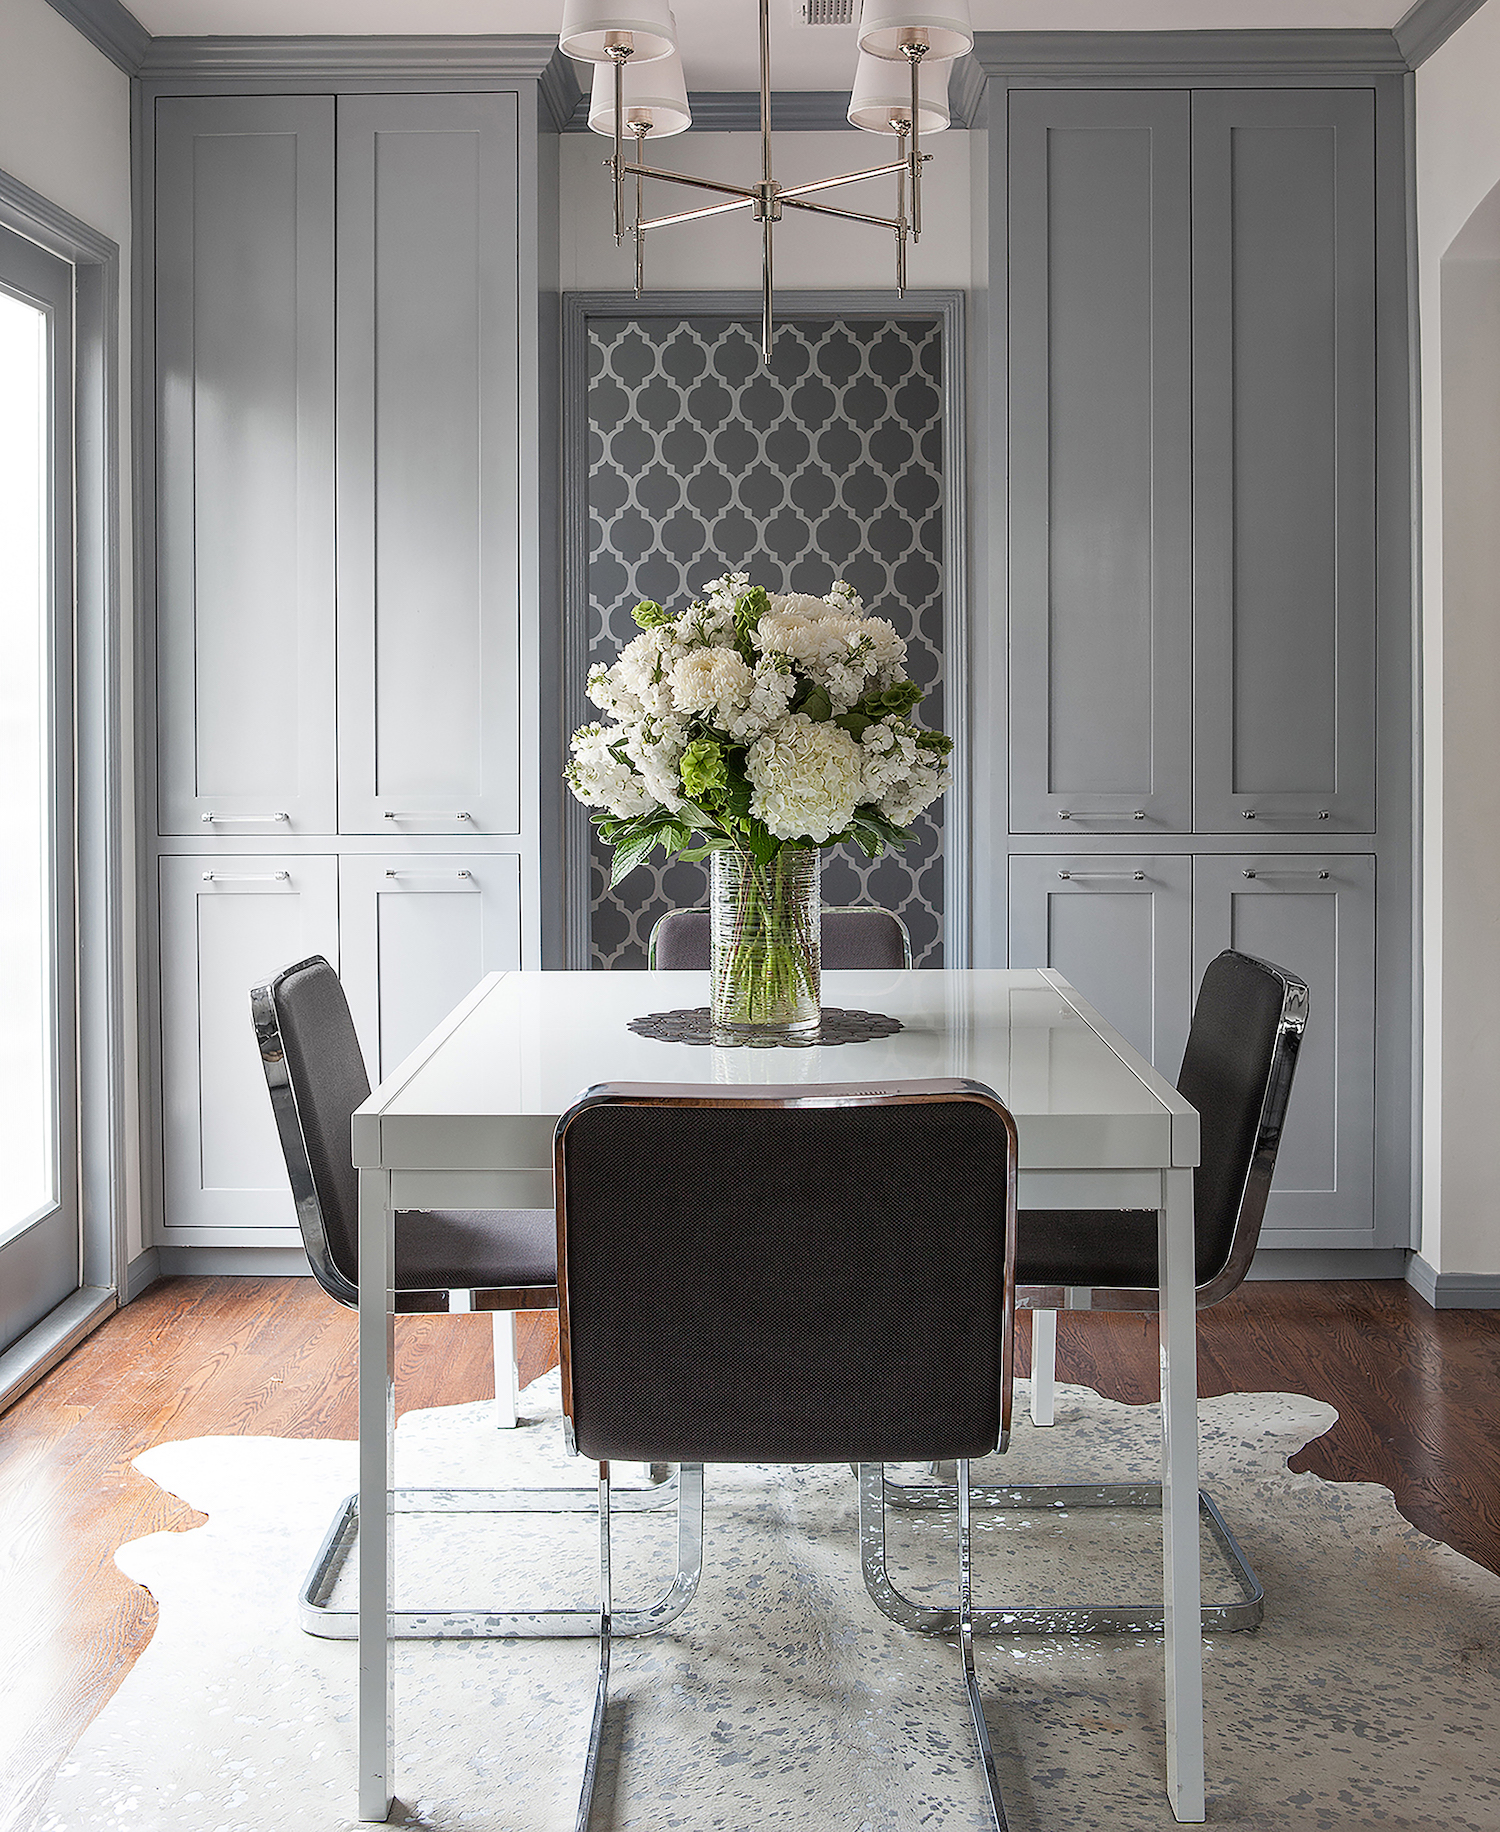 How to hire an interior designer – and how to work with them